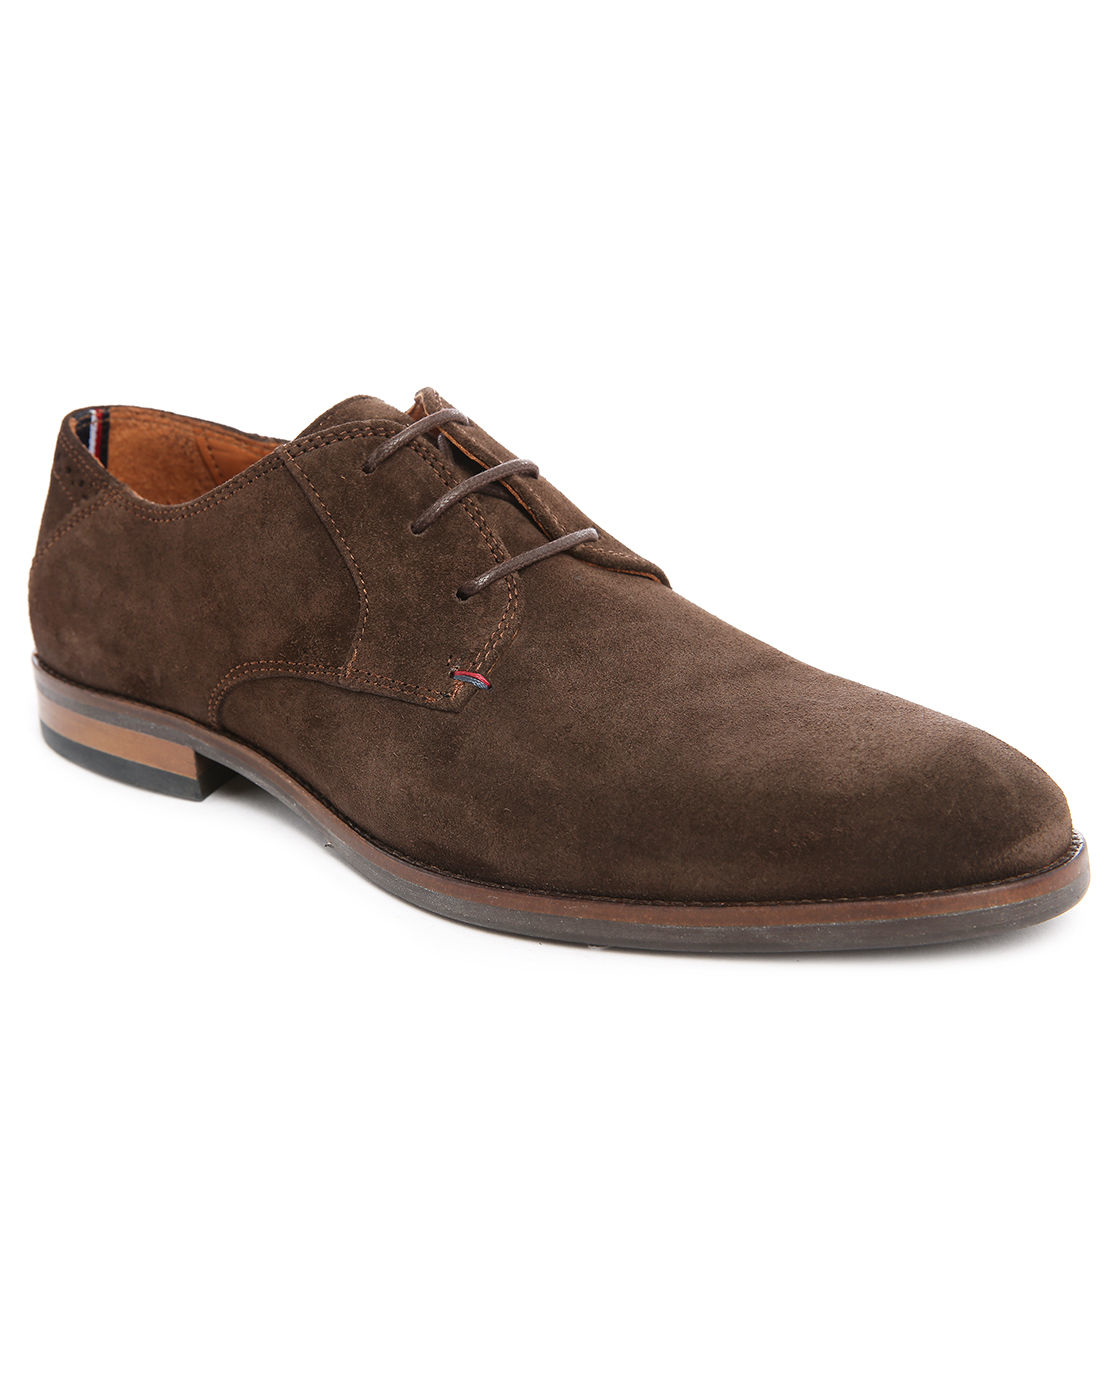 Tommy hilfiger Dalton 15b Brown Suede Derbies in Brown for